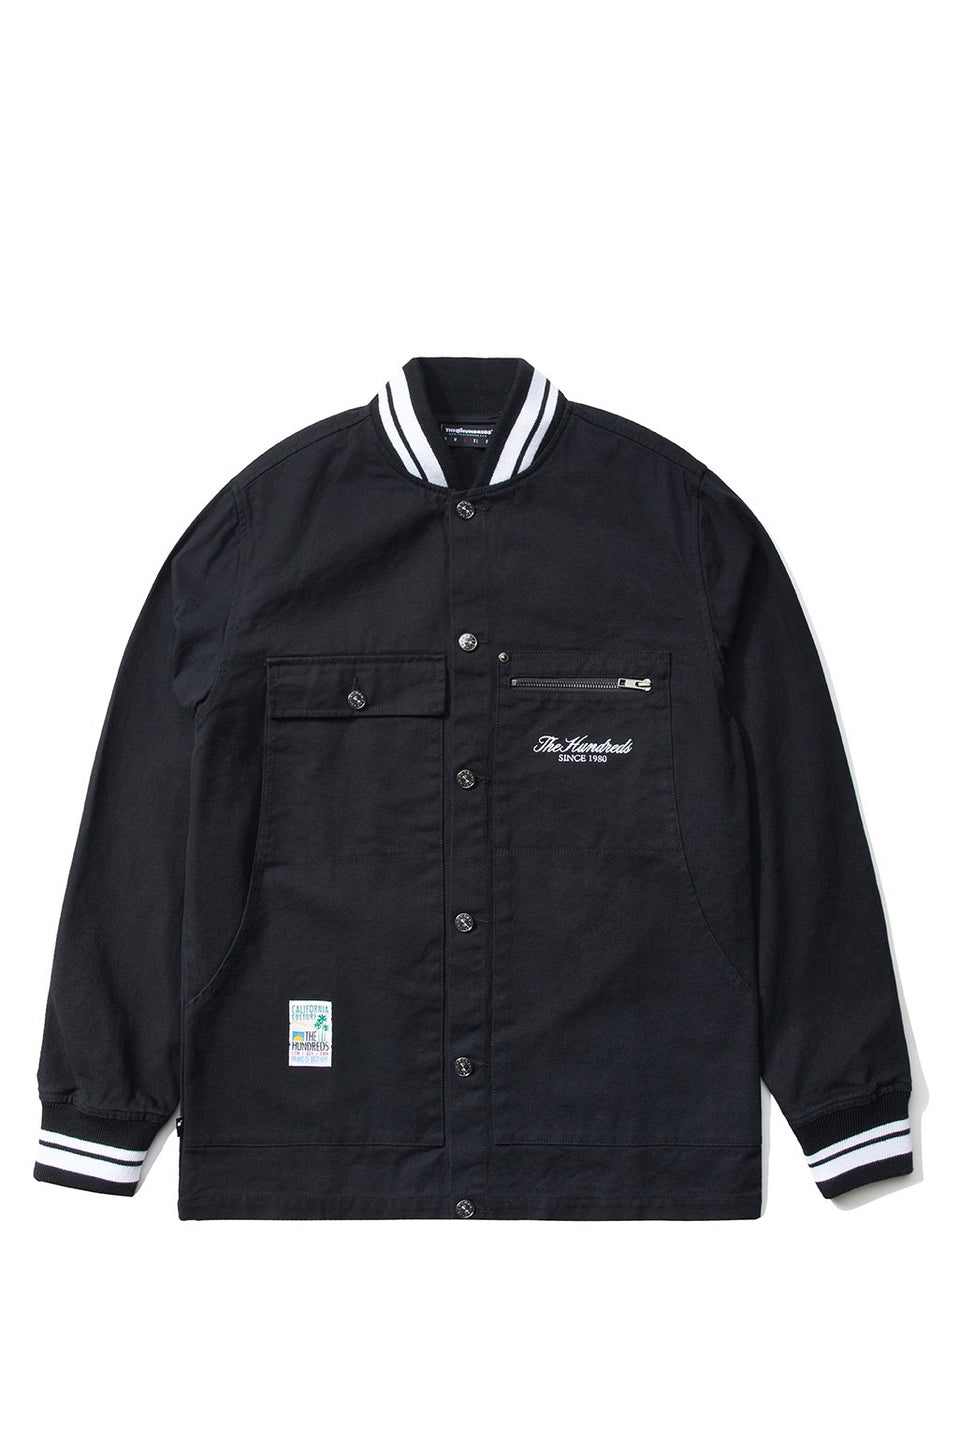 cheap for discount c1419 2785c The Hundreds